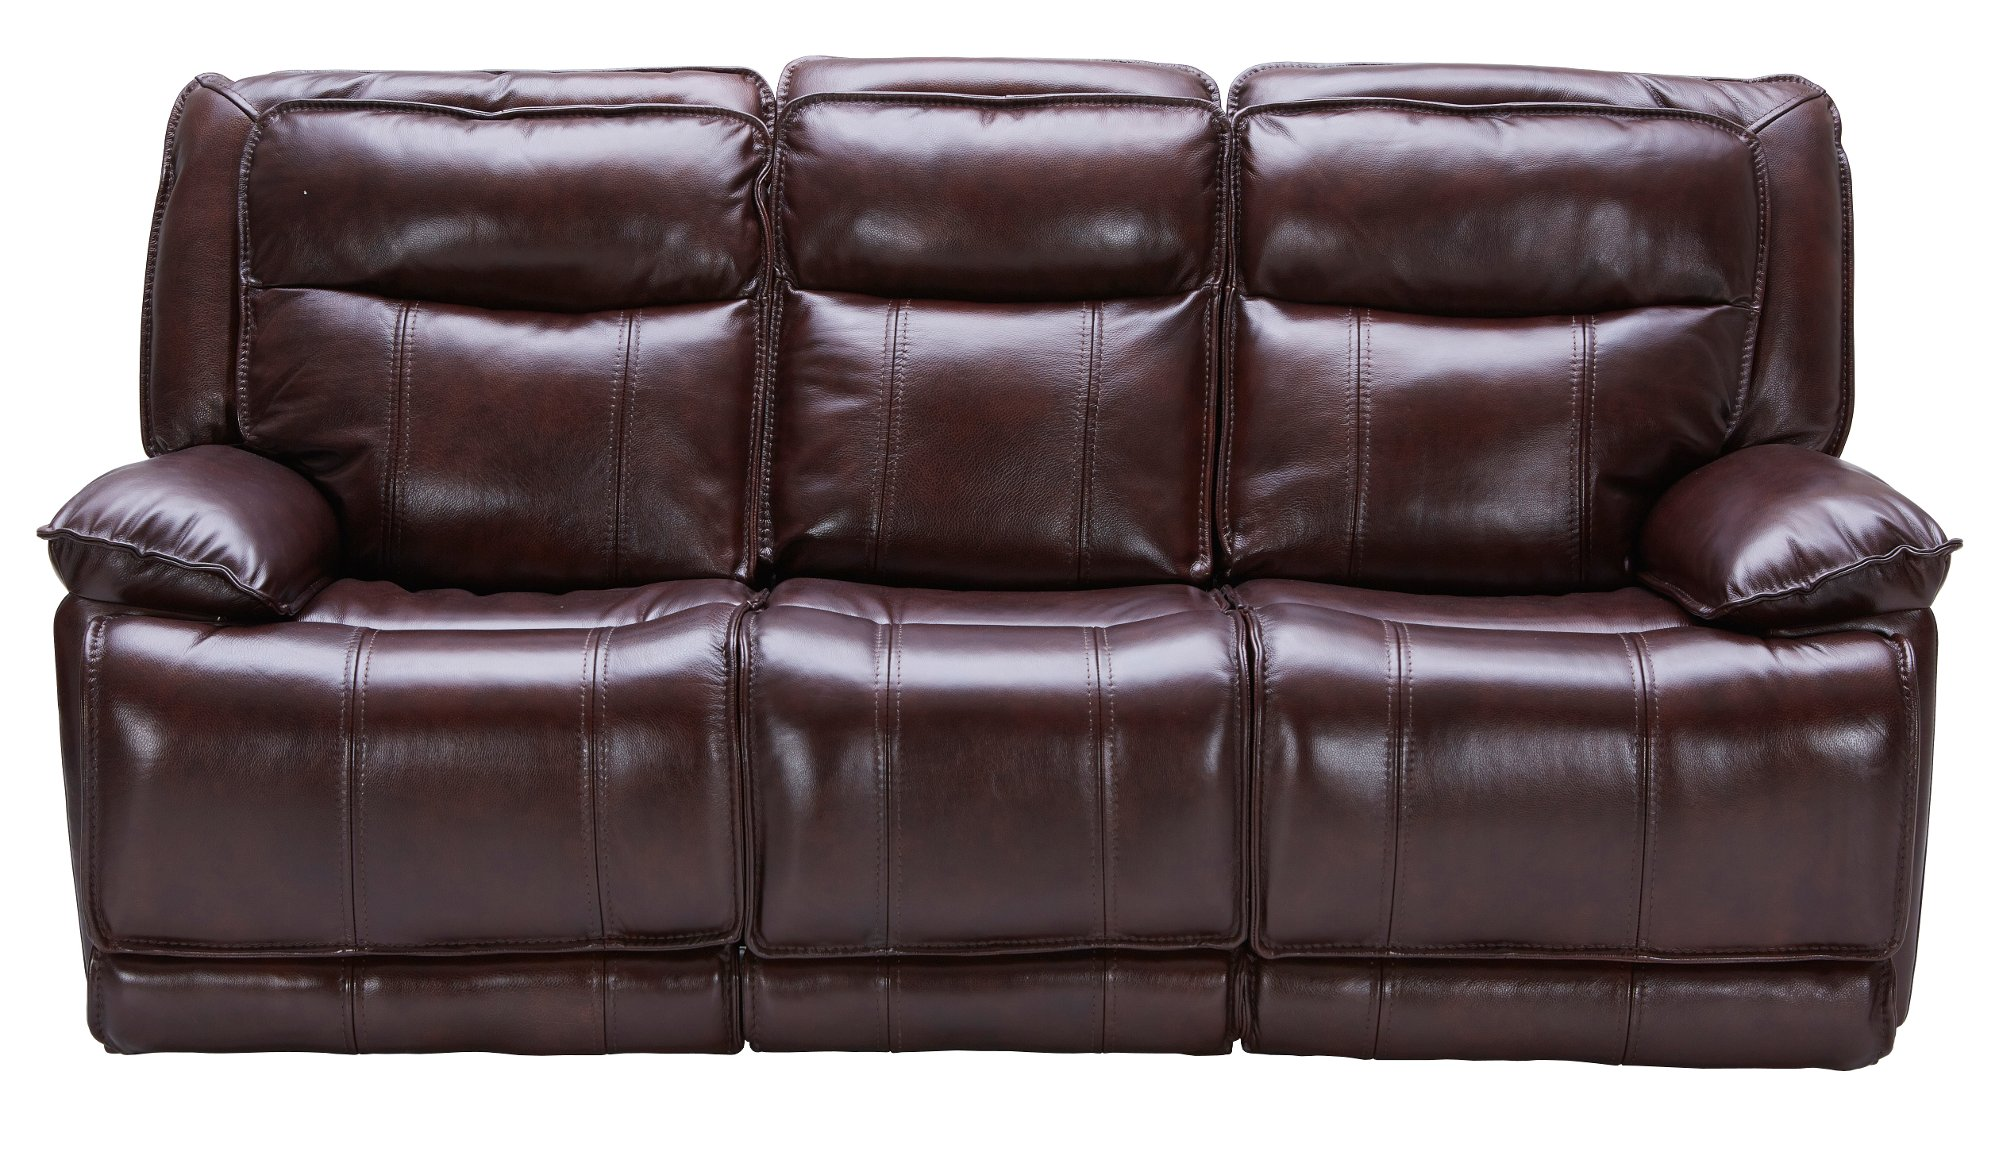 Bordeaux Burgundy Leather-Match Power Triple Reclining Sofa - K-Motion  sc 1 st  RC Willey & Bordeaux Burgundy Leather-Match Power Reclining Sofa u0026 Loveseat ... islam-shia.org